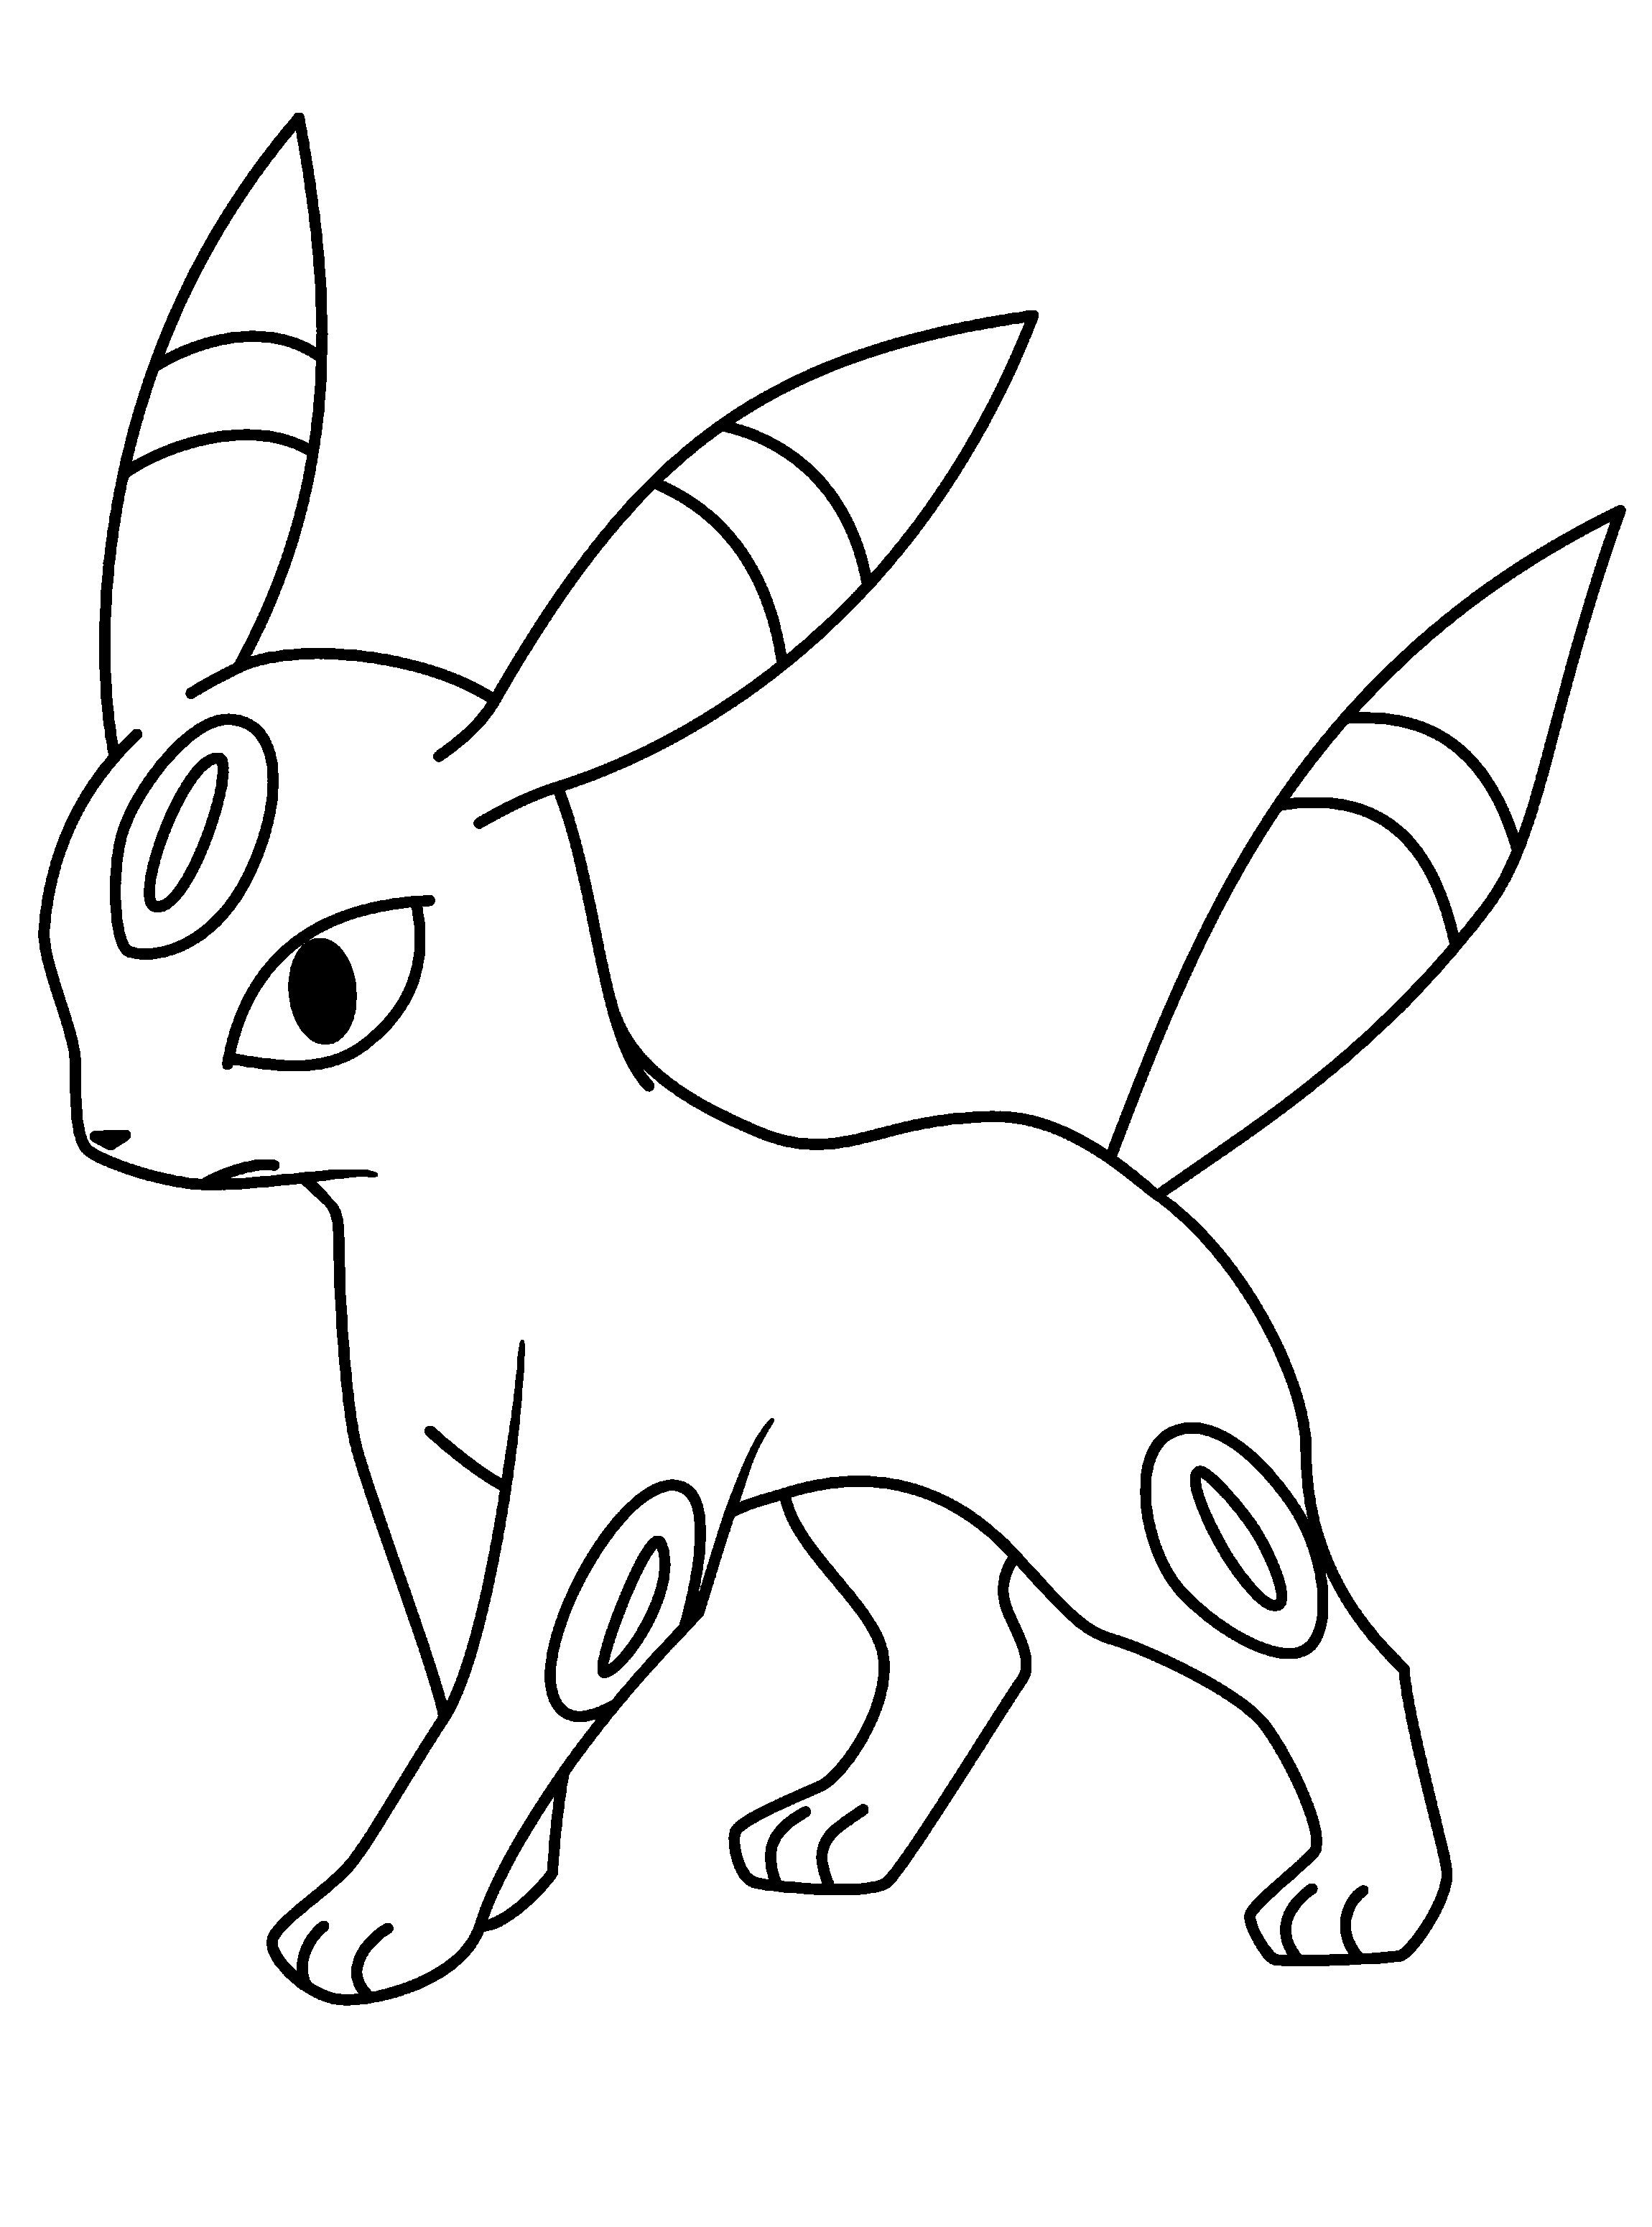 Pokemon Coloring Pages Walloid Dibujos De Pokemon Dibujos